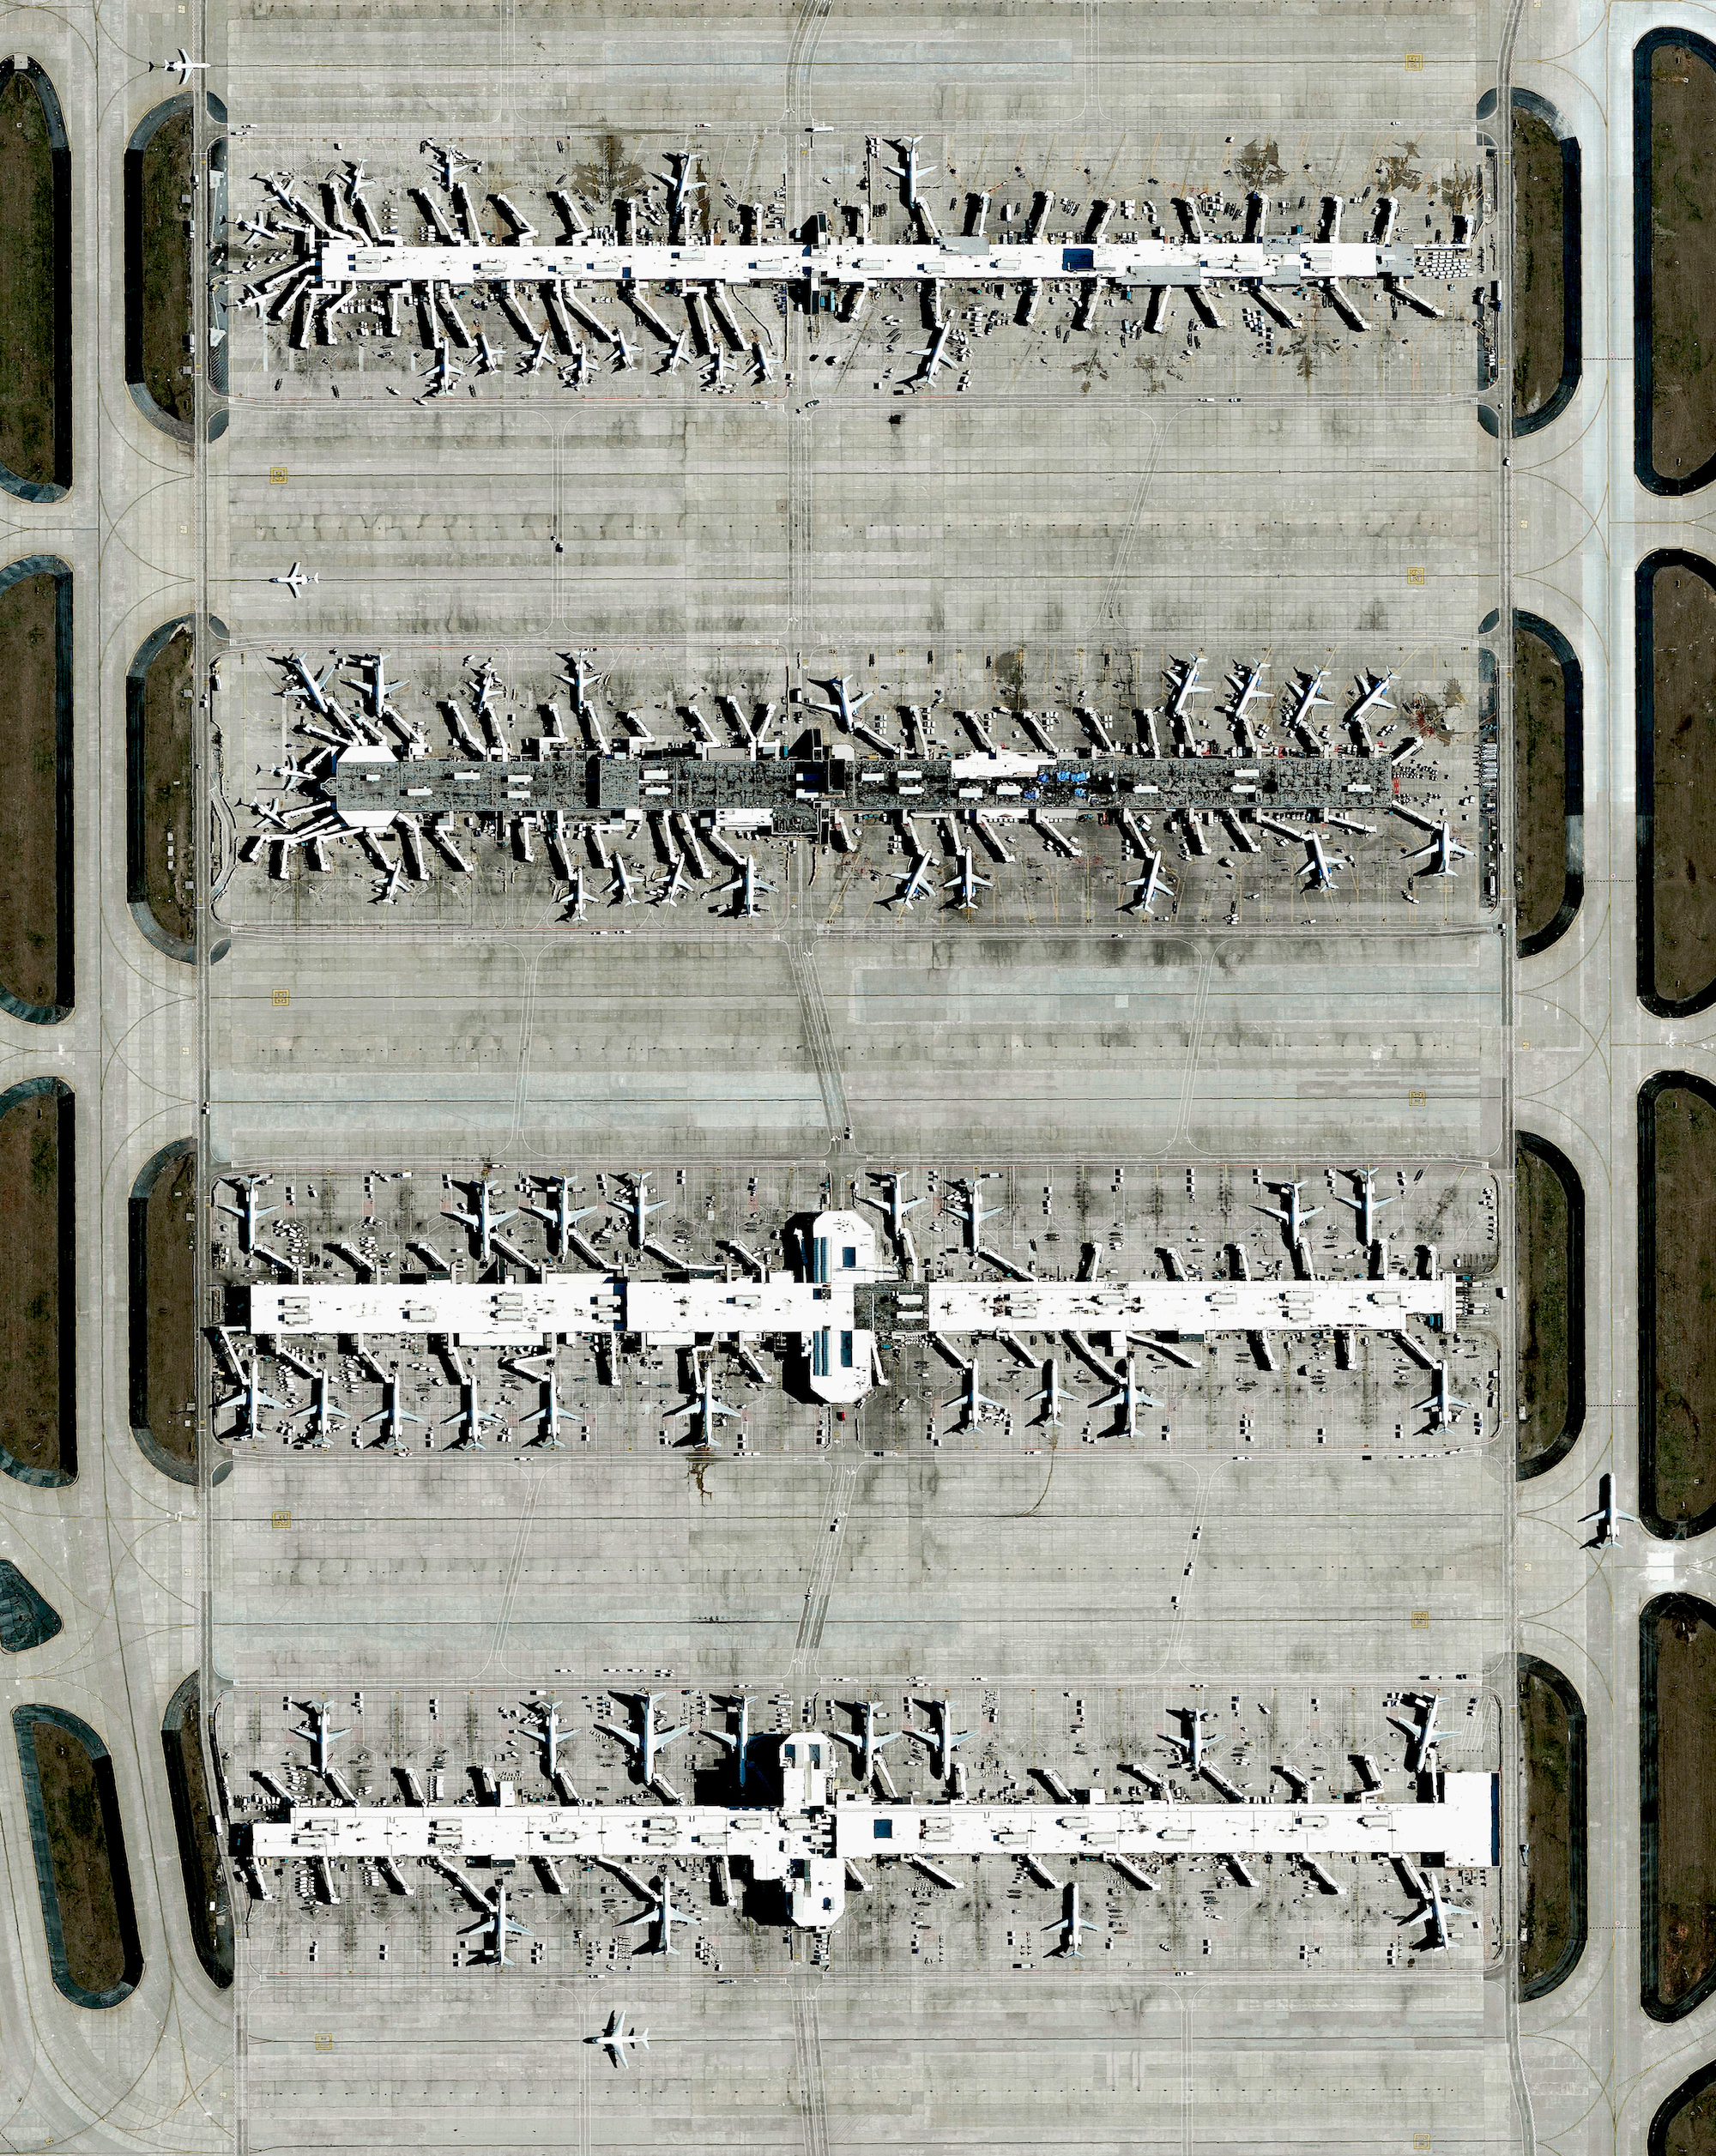 9/5/2016   Hartsfield-Jackson International Airport   Atlanta, Georgia, USA  33°38′12″N 084°25′41″W    Hartsfield–Jackson International Airport in Atlanta, Georgia, USA is the busiest airport in the world by total passengers and number of flights. In 2015, ATL accommodated more than 101 million passengers and 882,000 flights. Dozens of planes departing and arriving at concourses A-D are seen in this Overview.